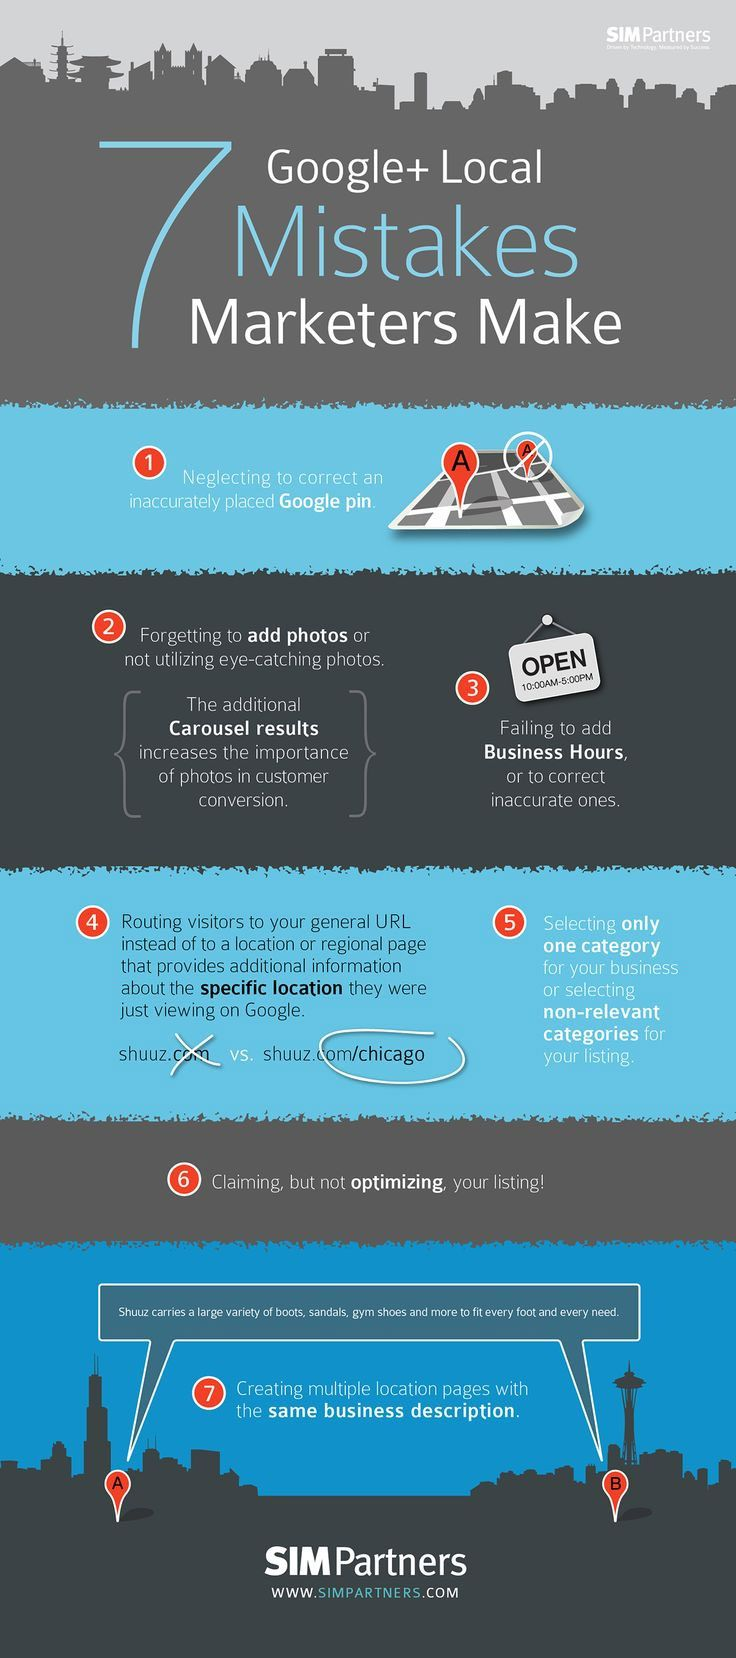 7 #GooglePlus mistakes that local #marketers make http://webmag.co/google-local-marketing-mistakes/ #Infographic #WebsiteMagazine #SocialMedia #SEO